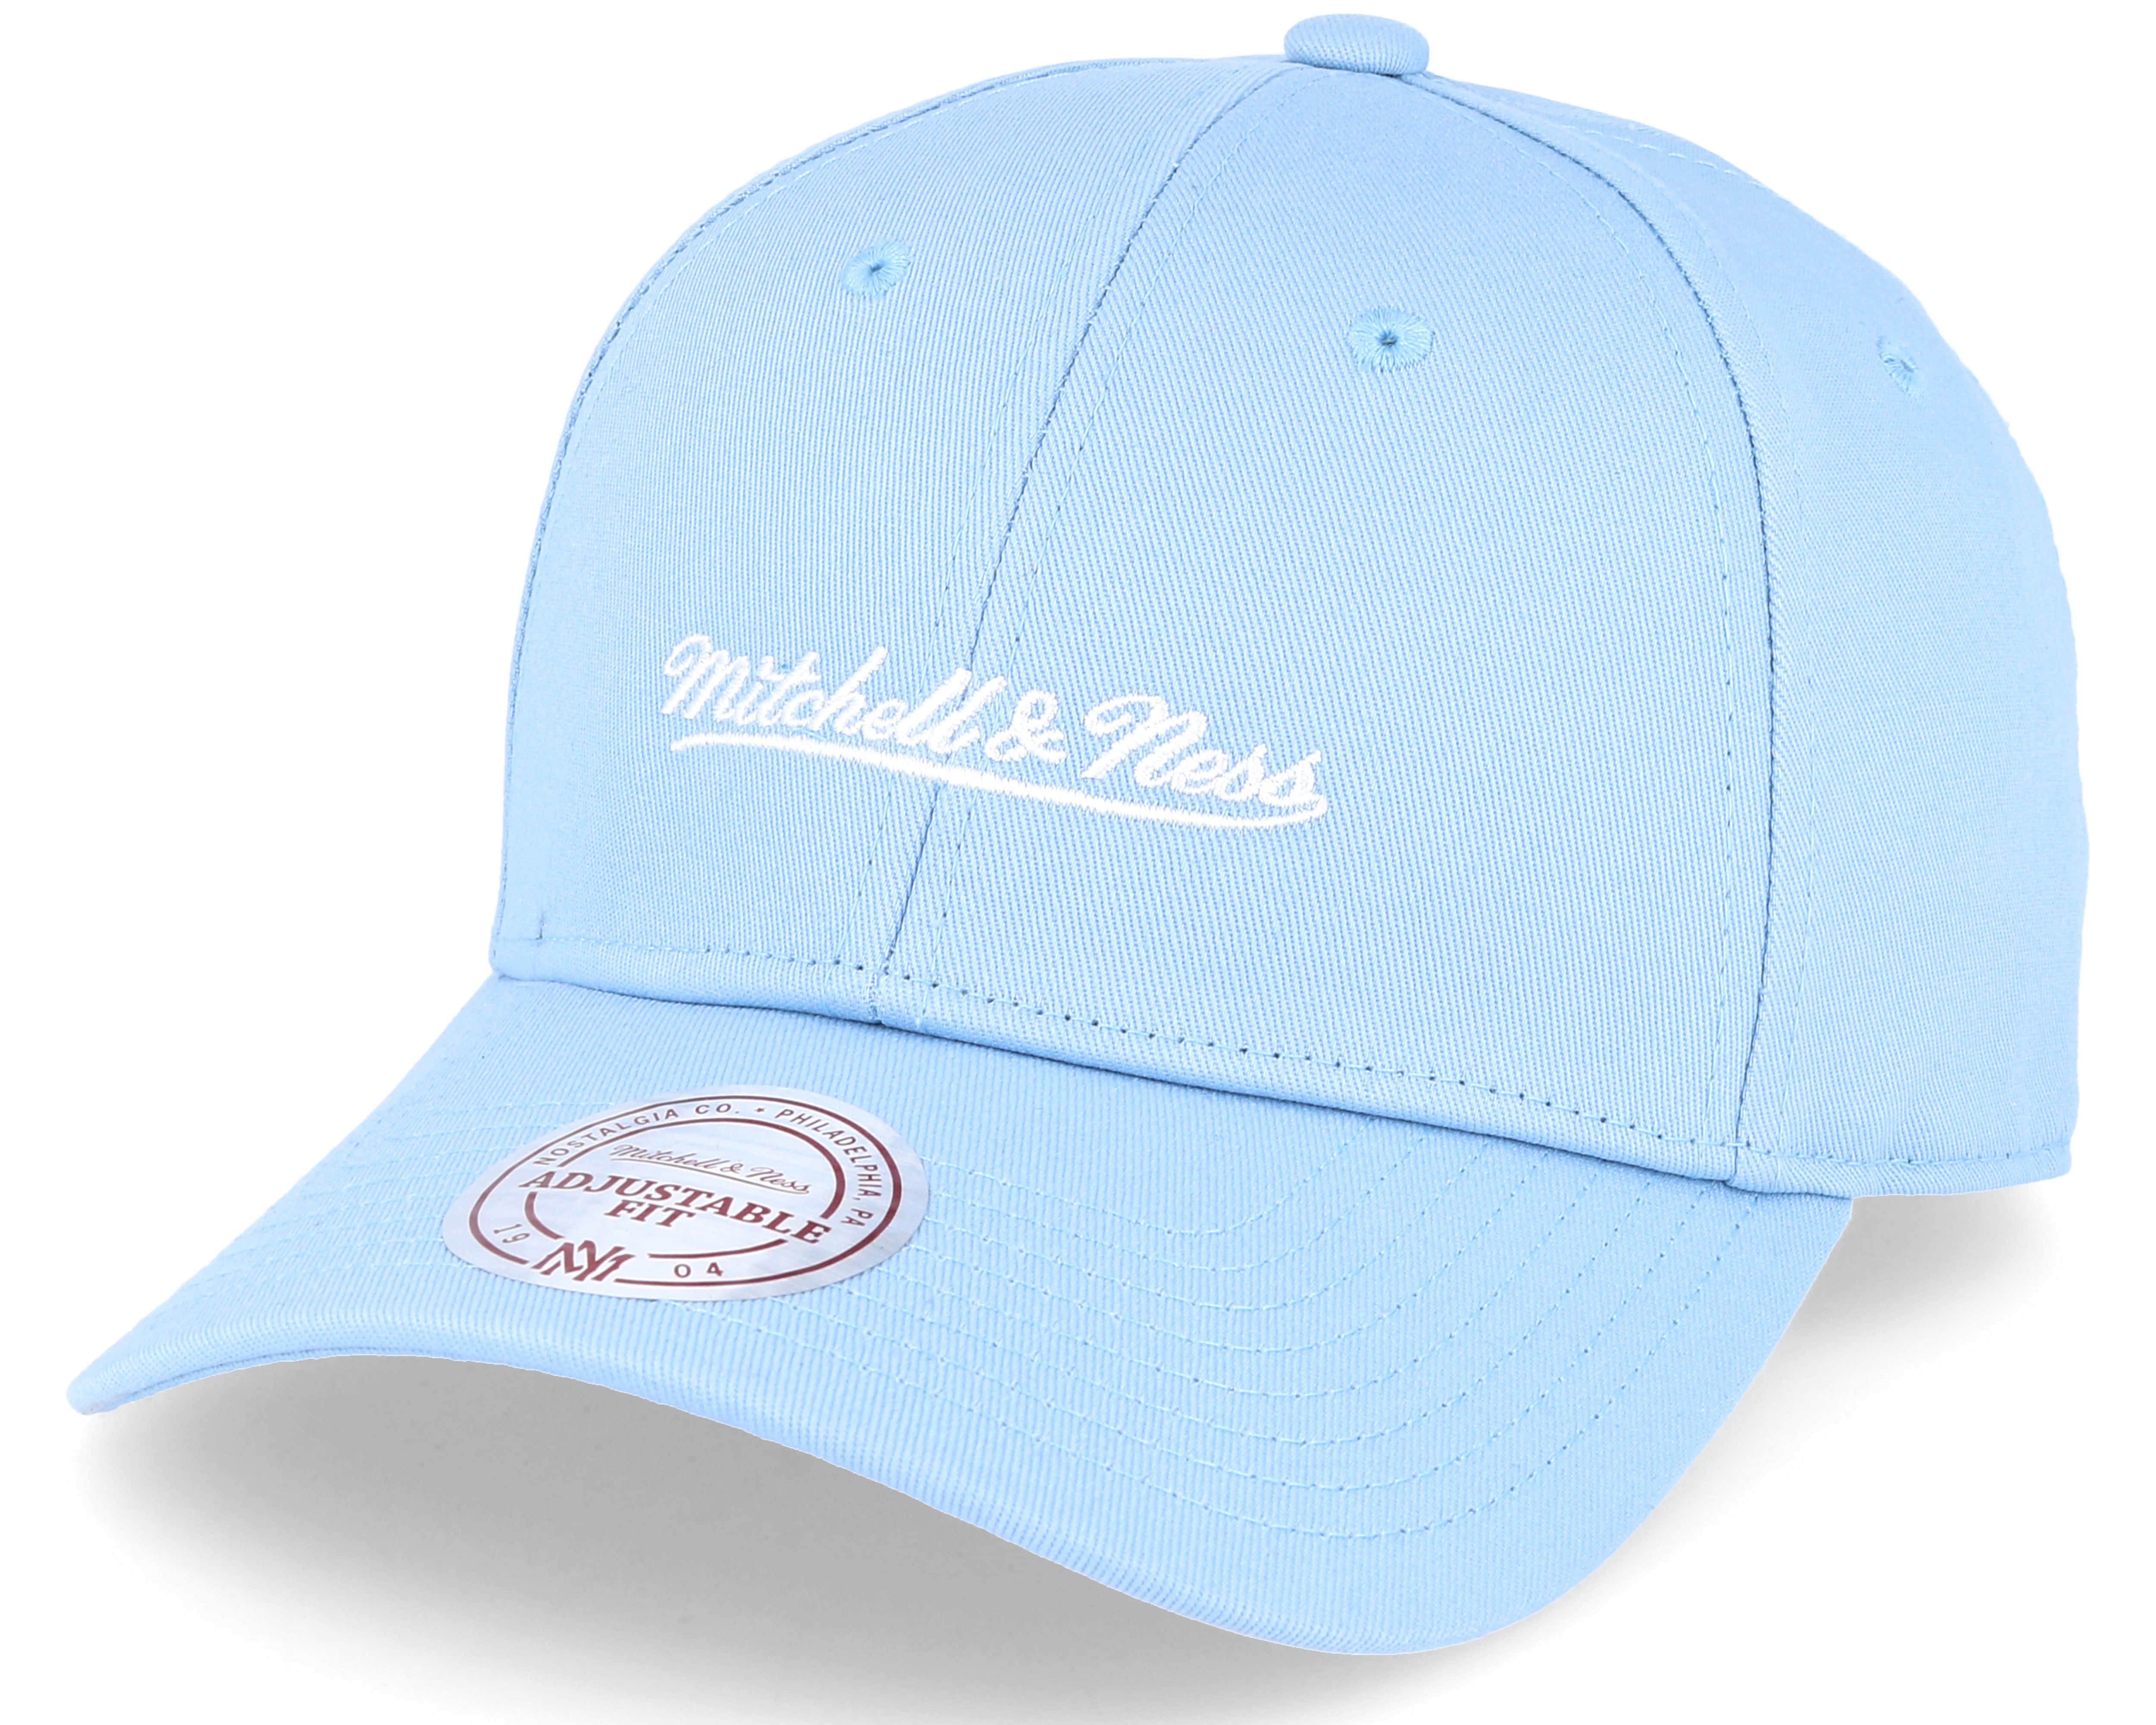 027a36ff4a0 Low Pro Strapback Blue Adjustable - Mitchell   Ness caps